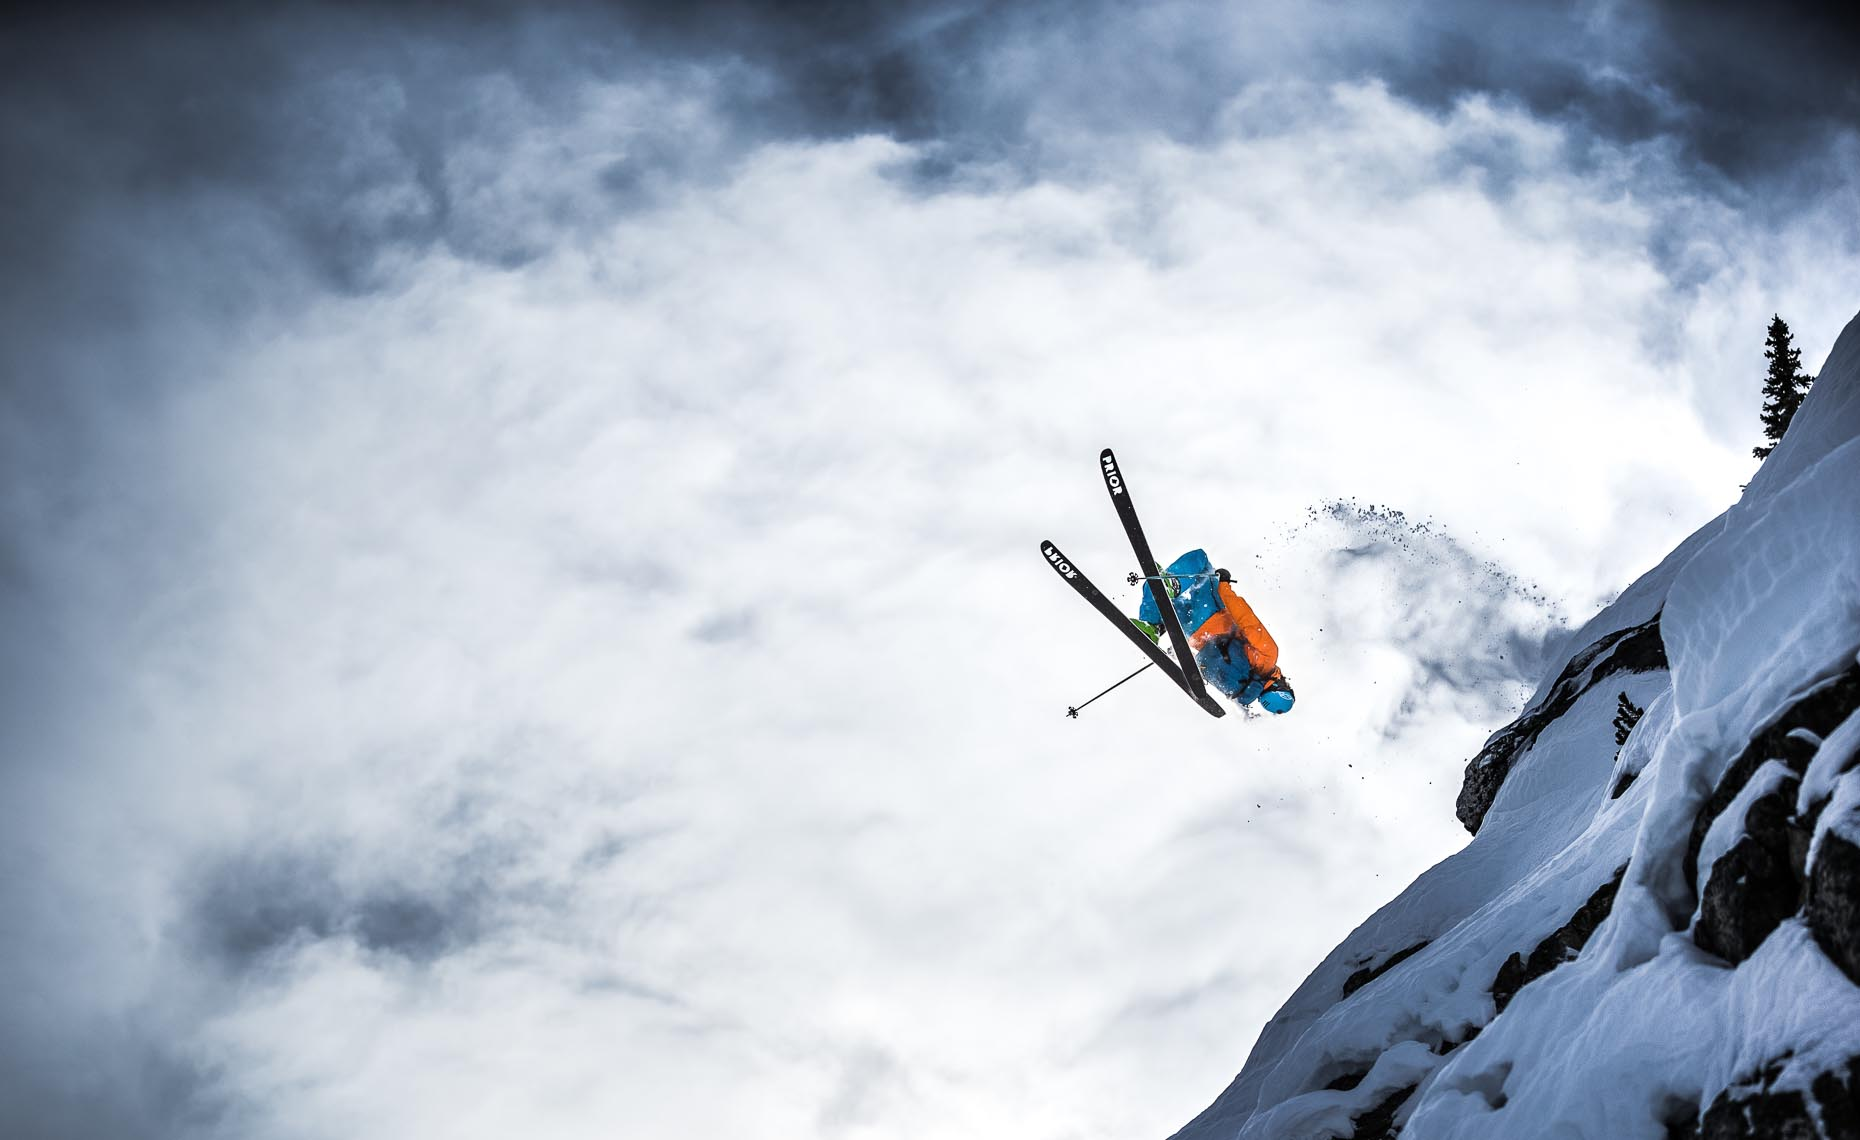 Pro ski action photographer from whistler